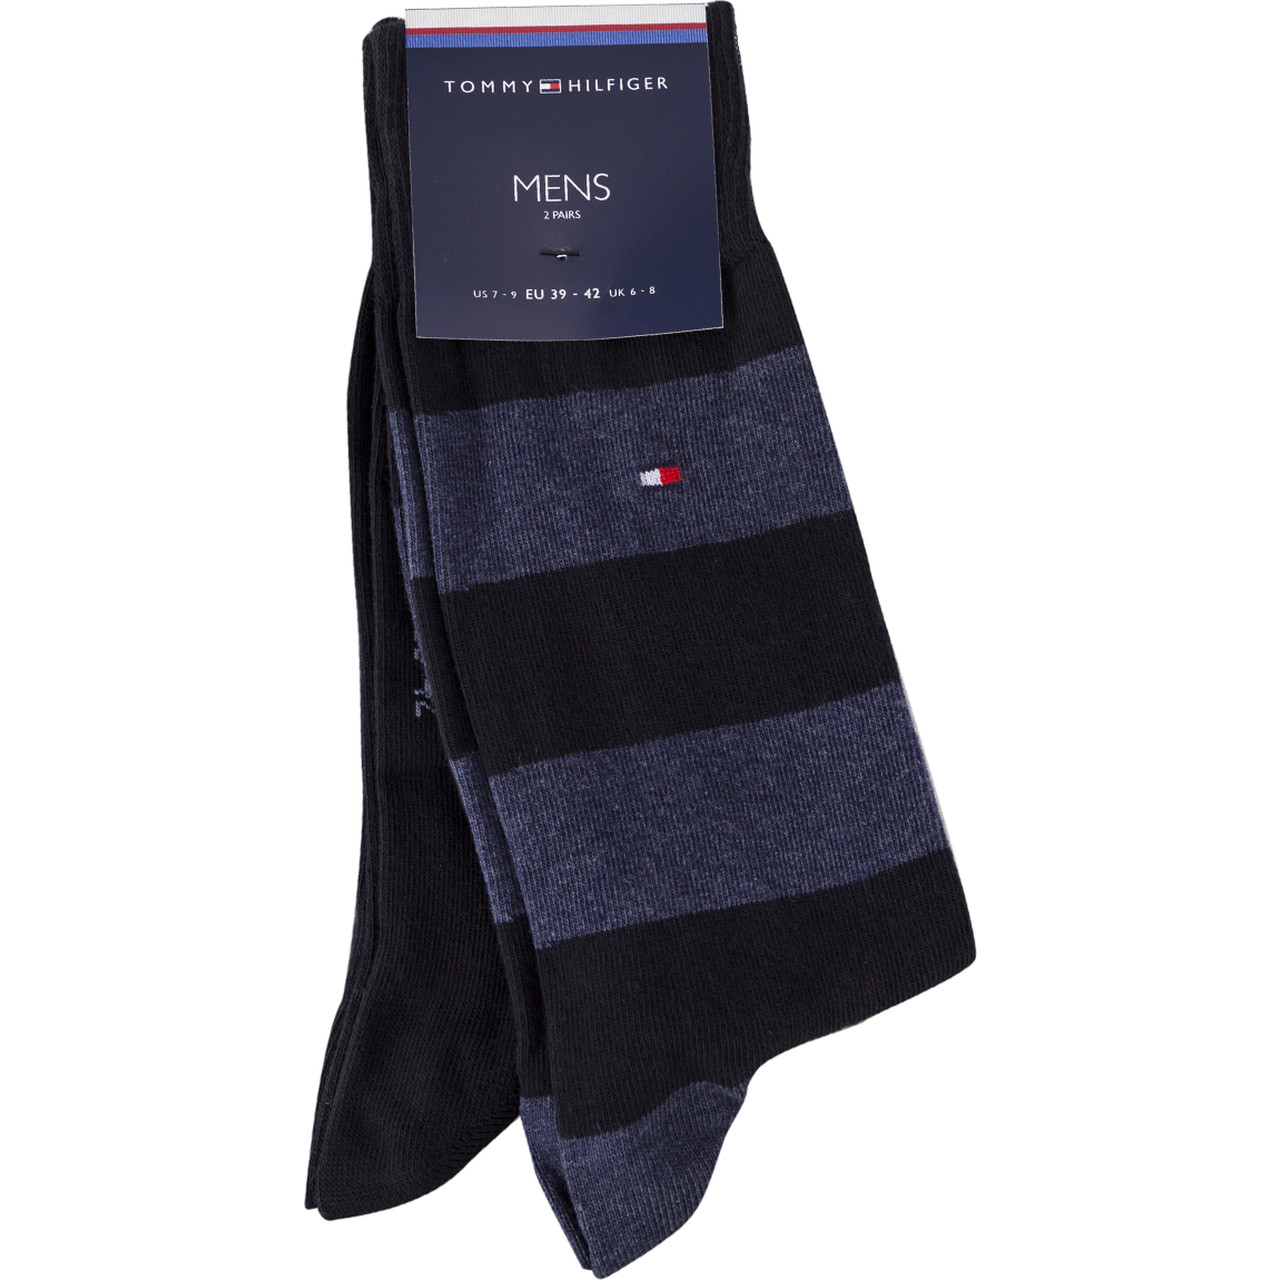 Skarpety 2Pack Tommy Hilfiger  <br/><small>MEN RUGBY SOCK322 BLACK/BLUE </small>  342021001-322